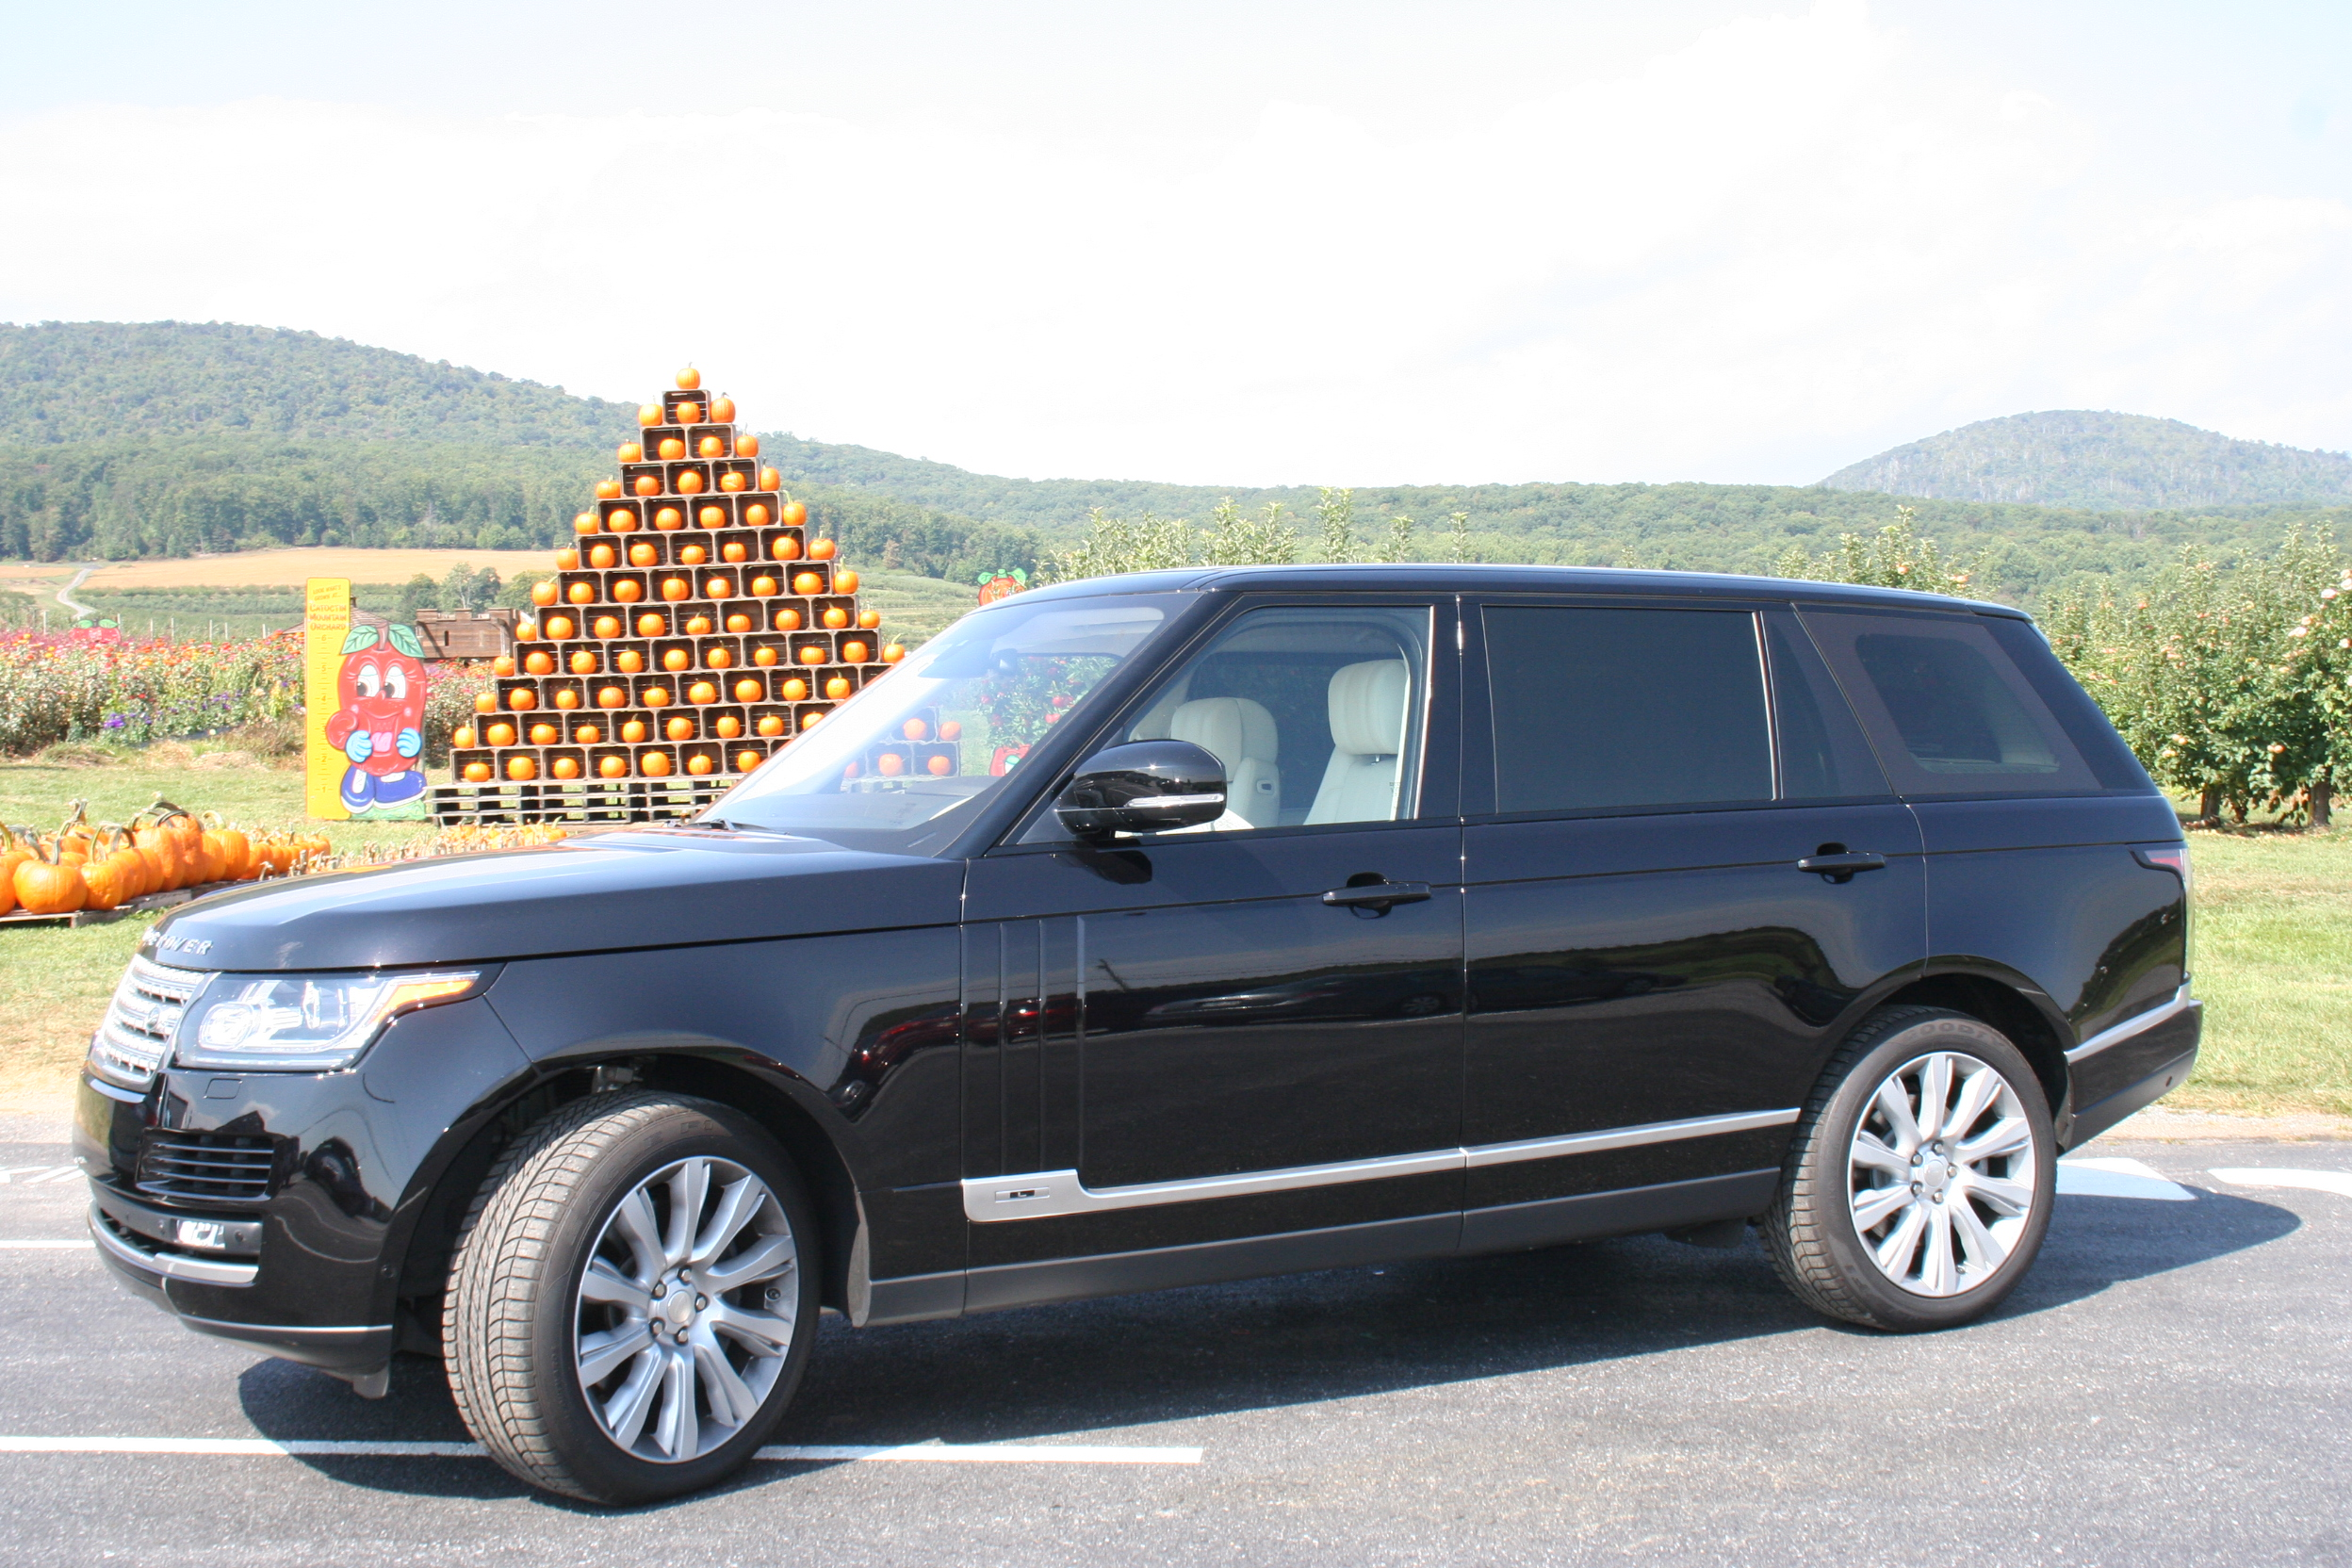 Car Report: Luxury Range Rover adds more space and comfort